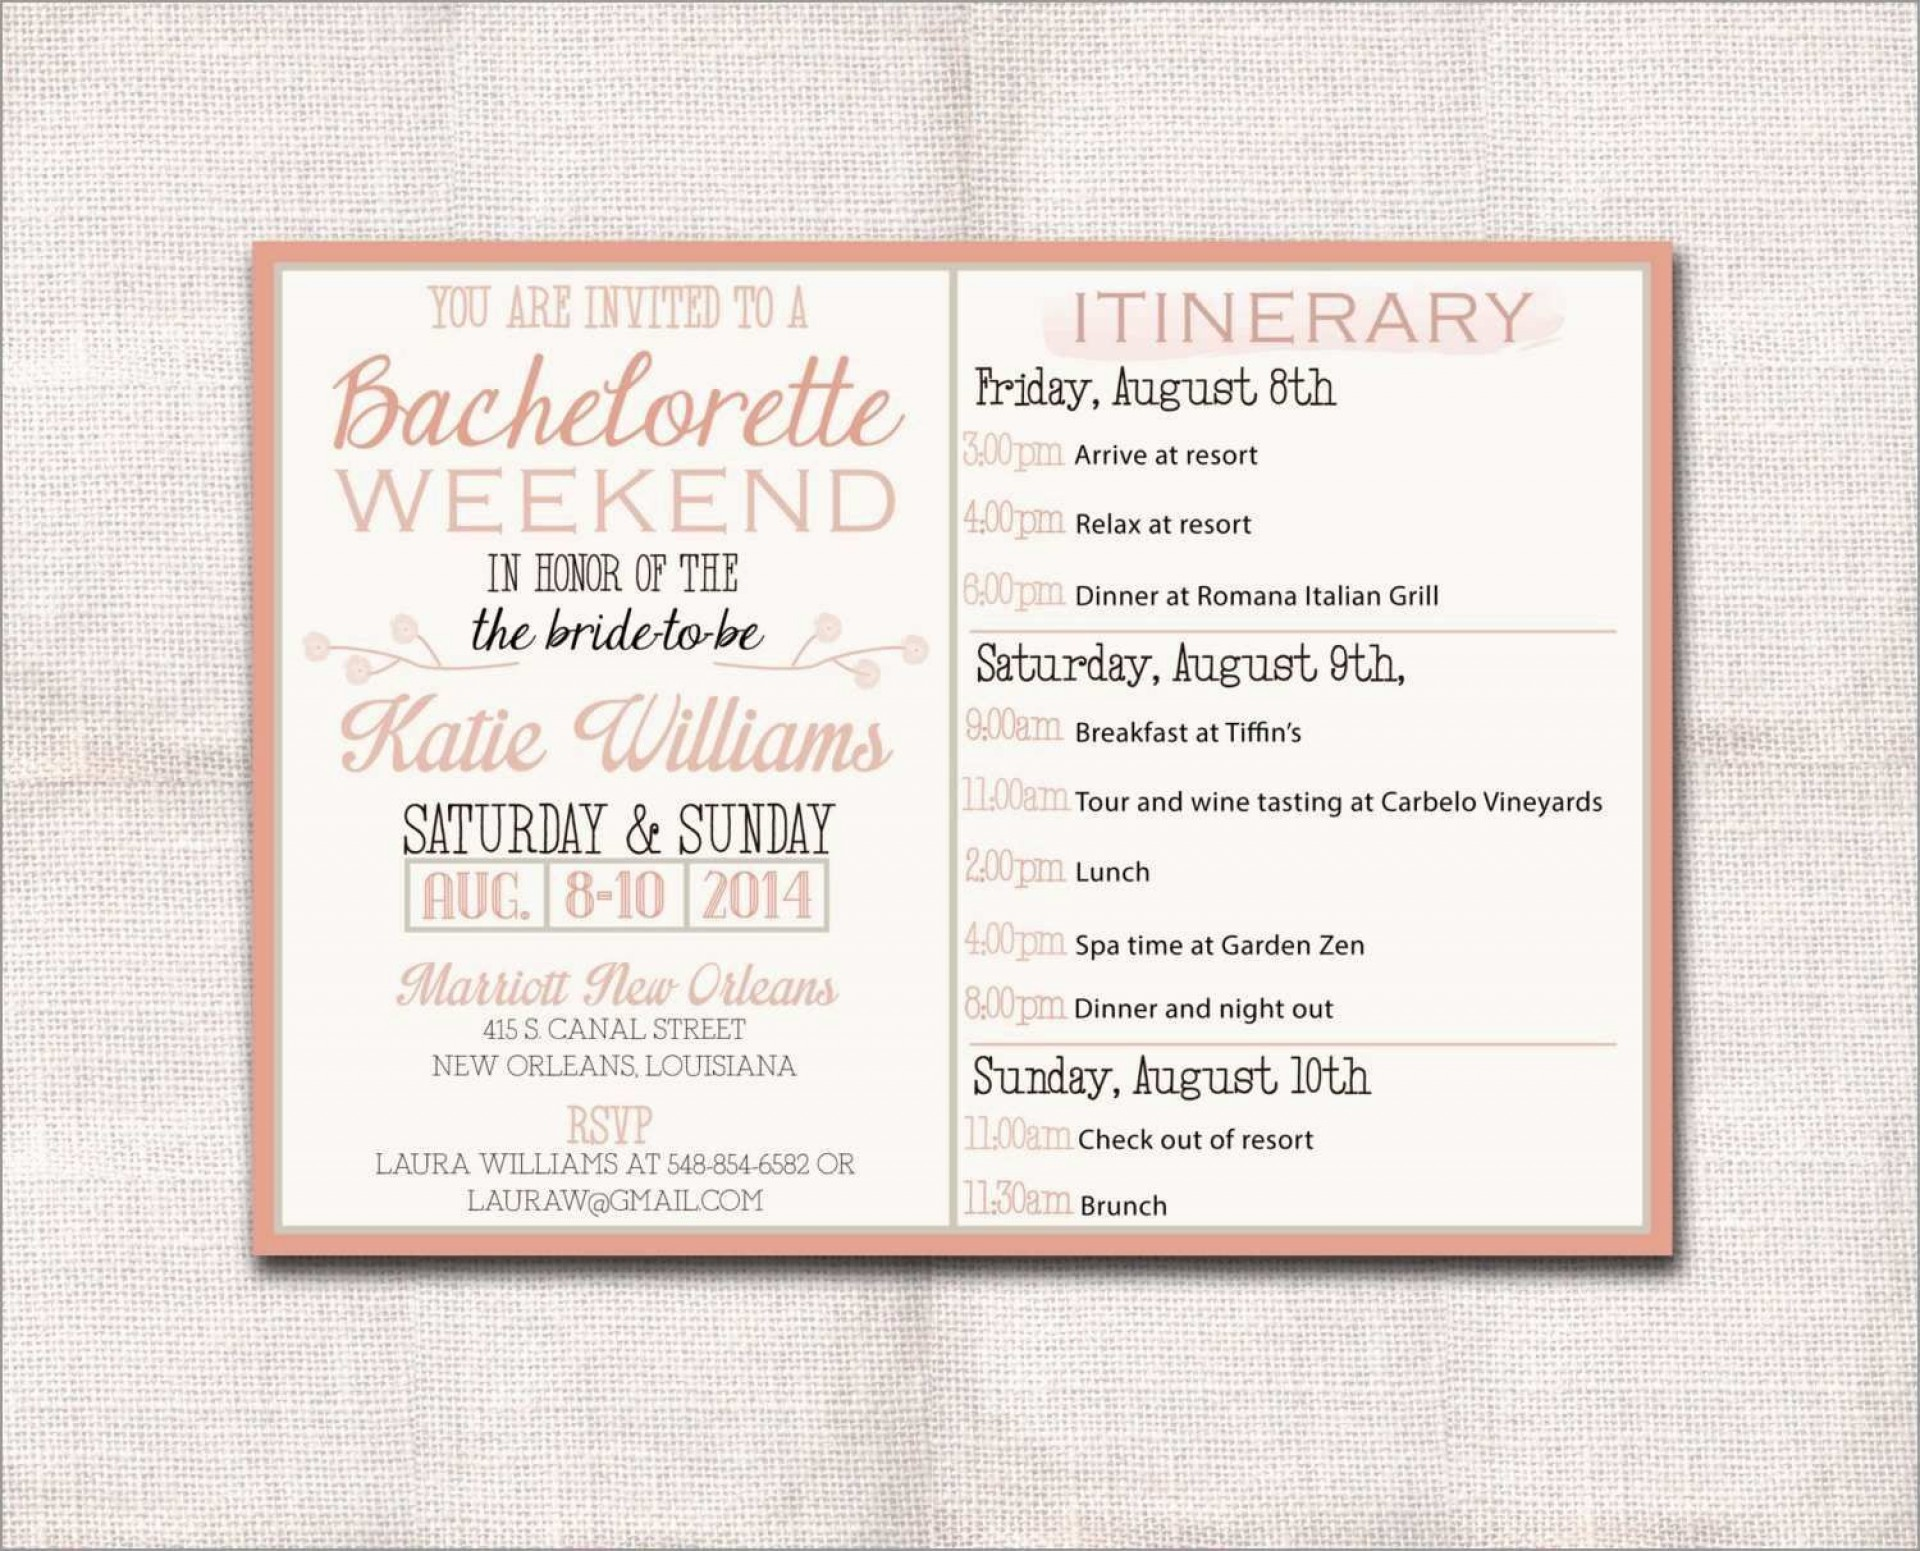 002 Singular Bachelorette Itinerary Template Free Concept  Party Editable Download1920